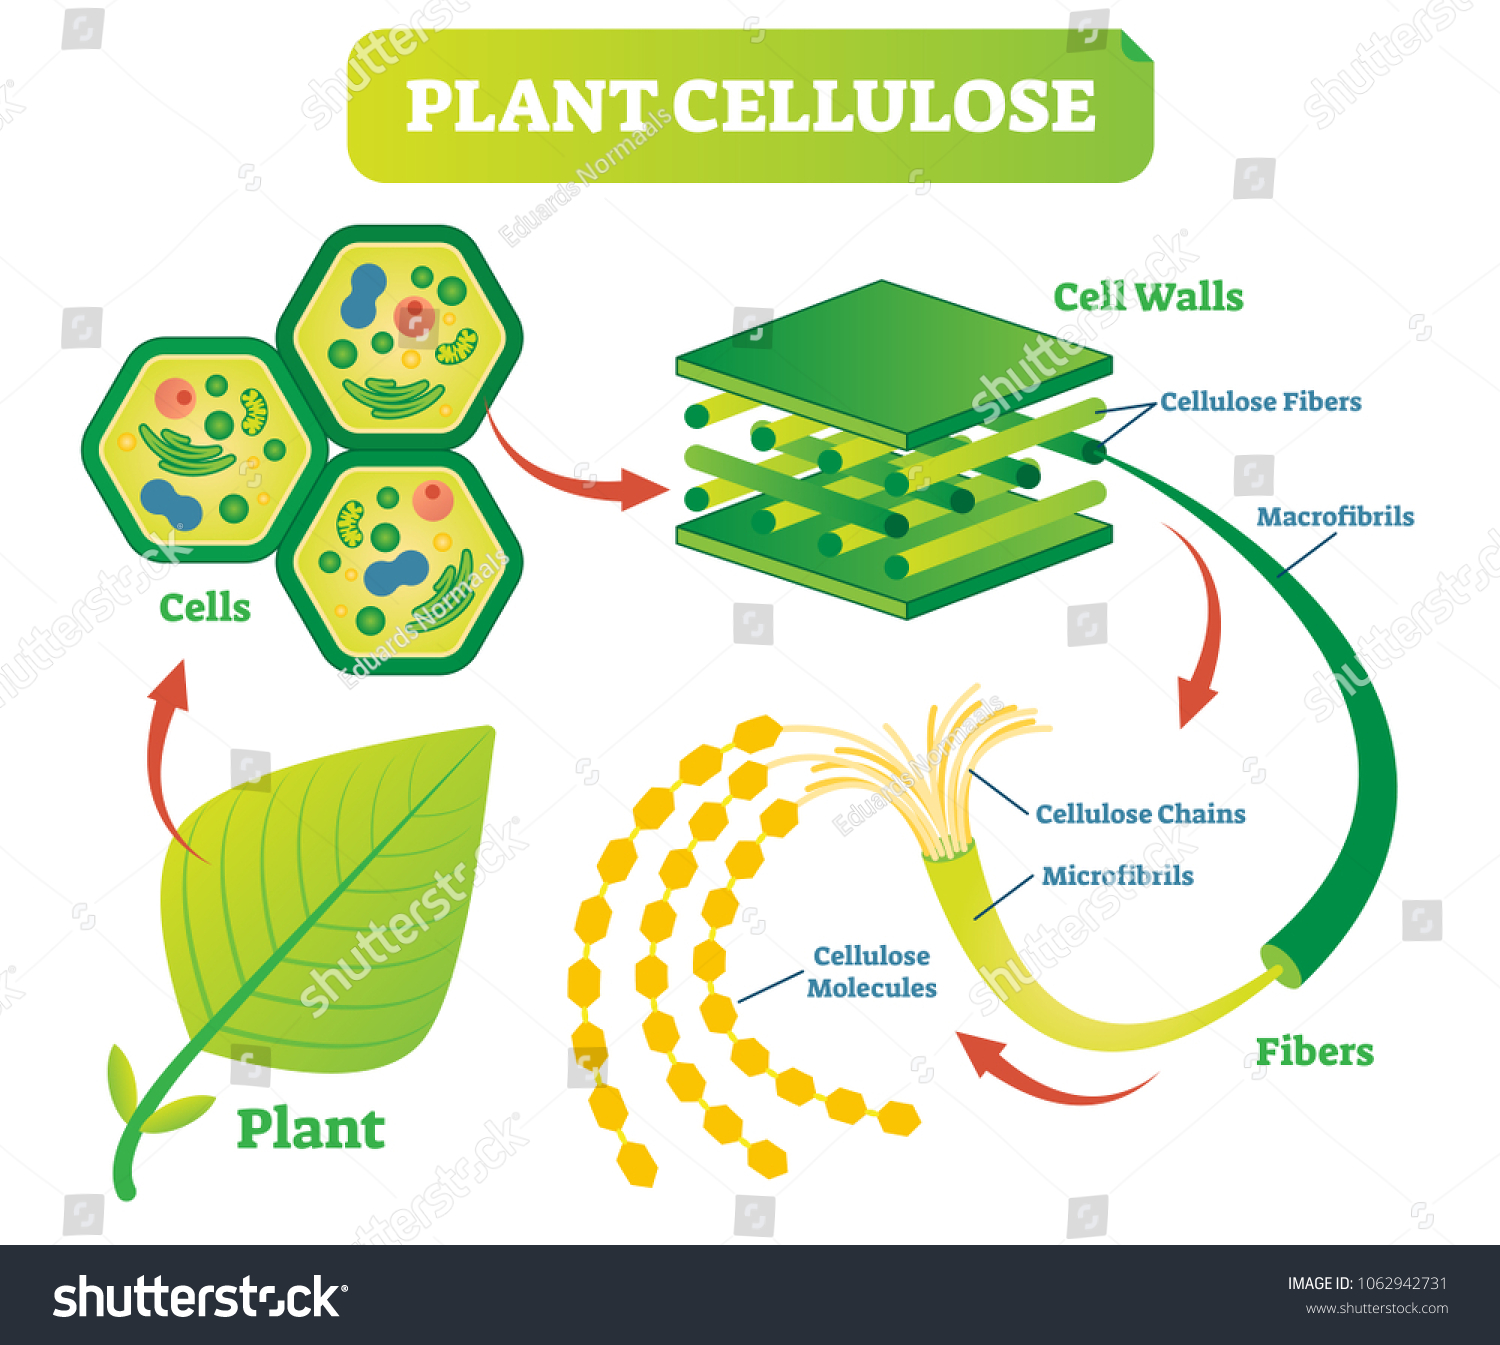 Image result for cellulose fibre biology diagram